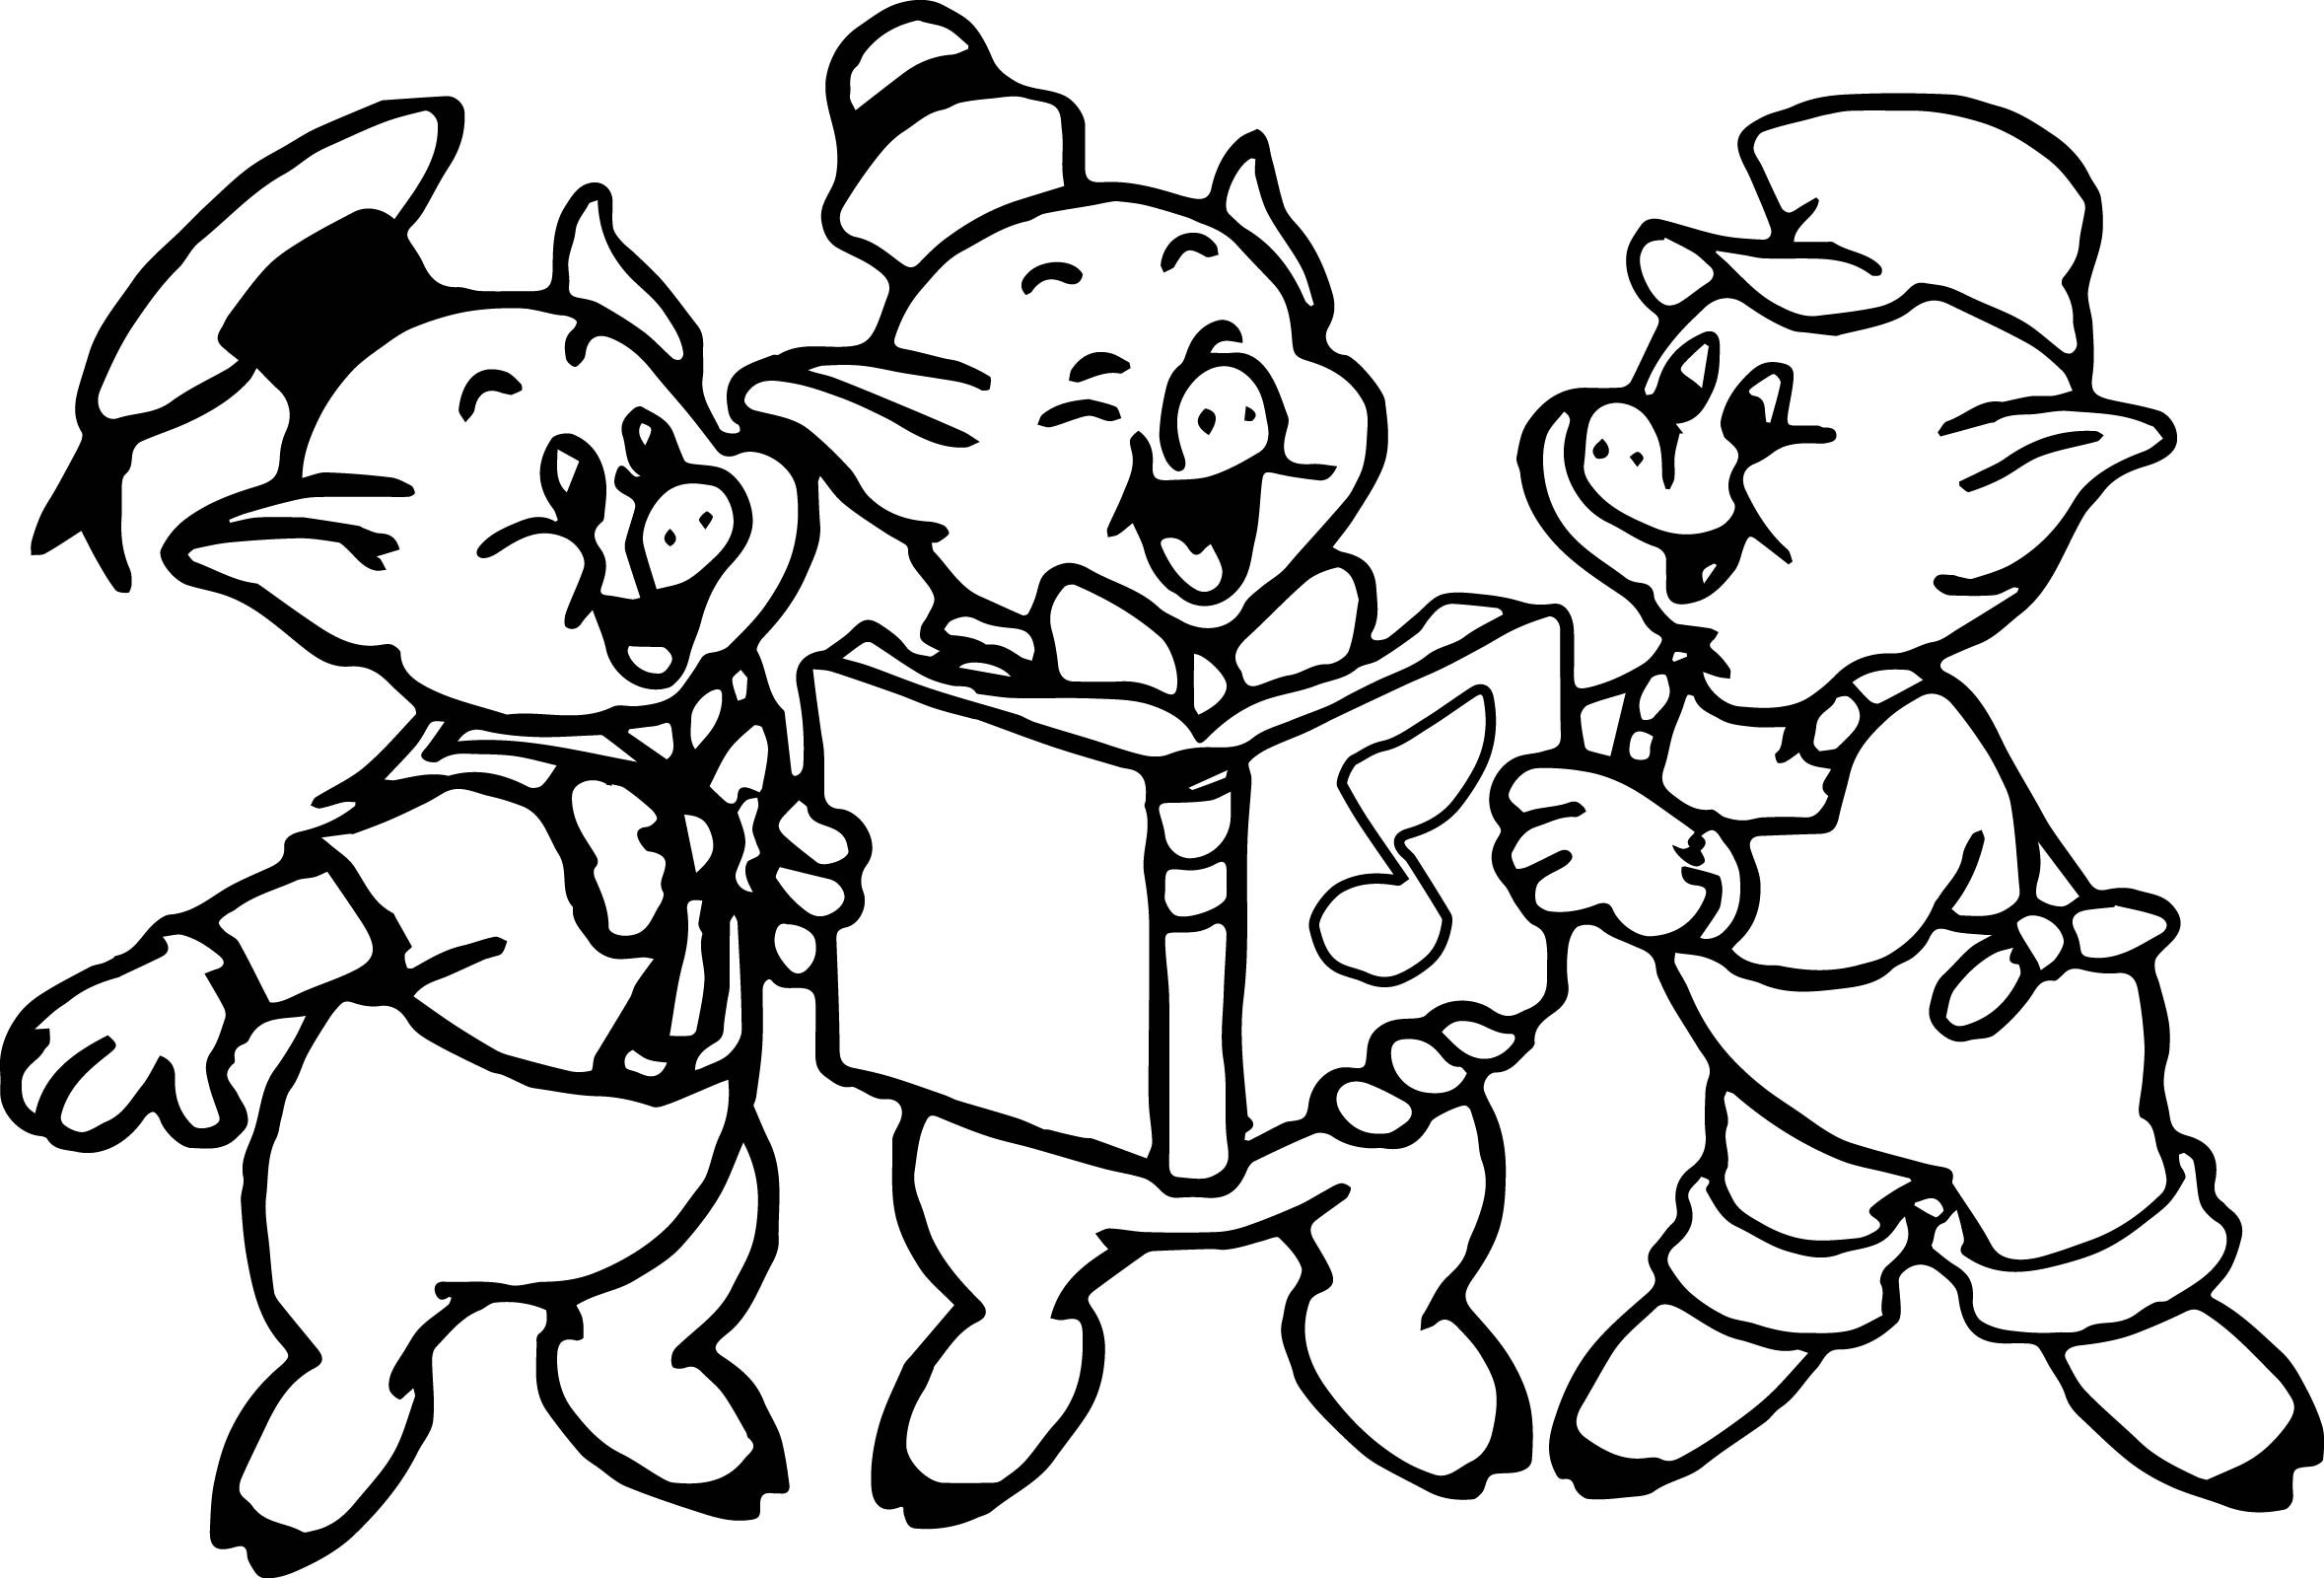 Three Little Pigs Music Book Coloring Page | Wecoloringpage